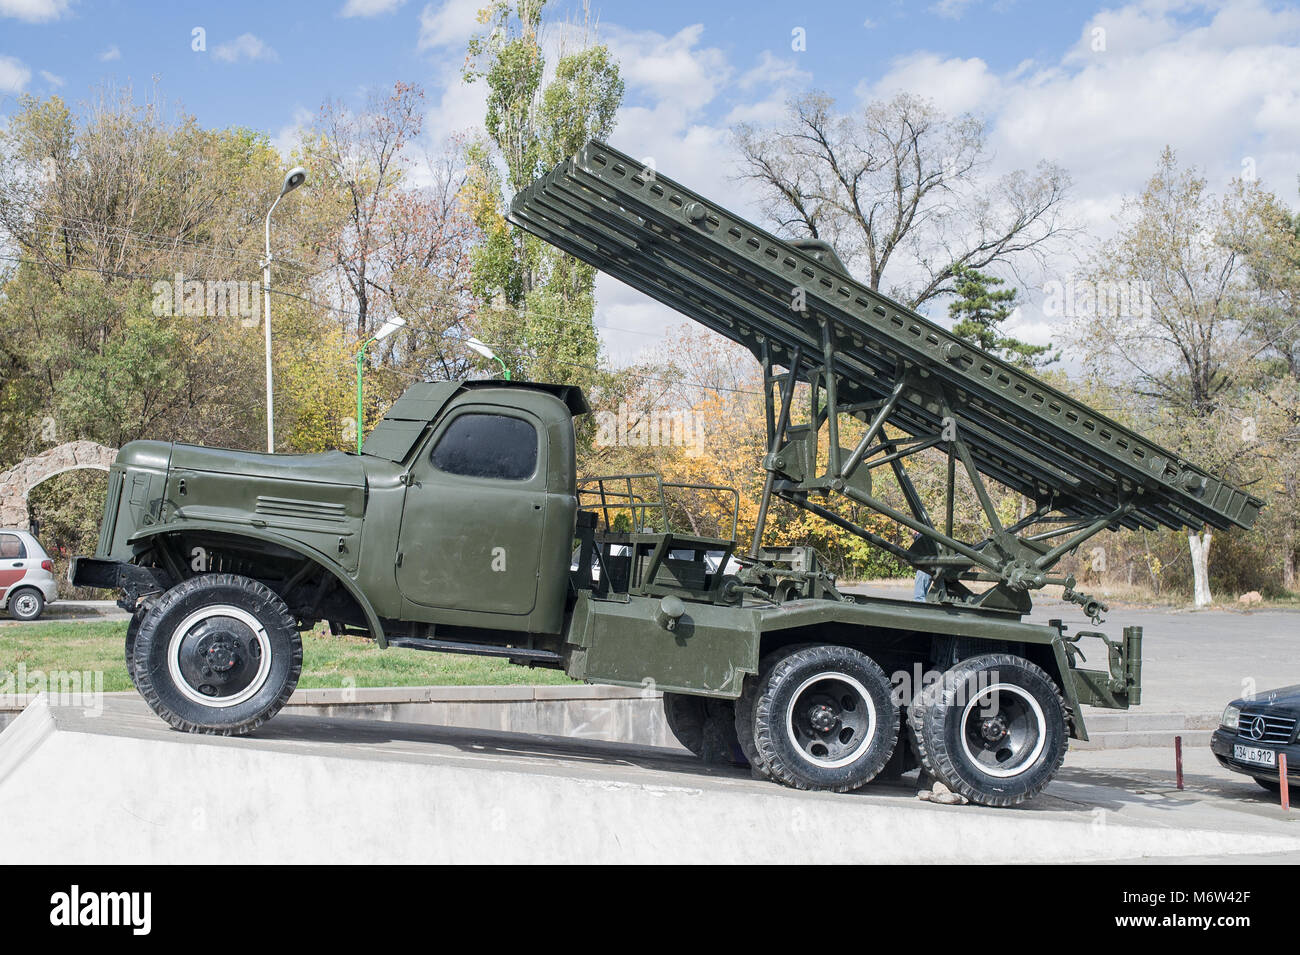 Soviet Union Katyusha rocket launcher from World War II in Victory Park, Yerevan - Stock Image